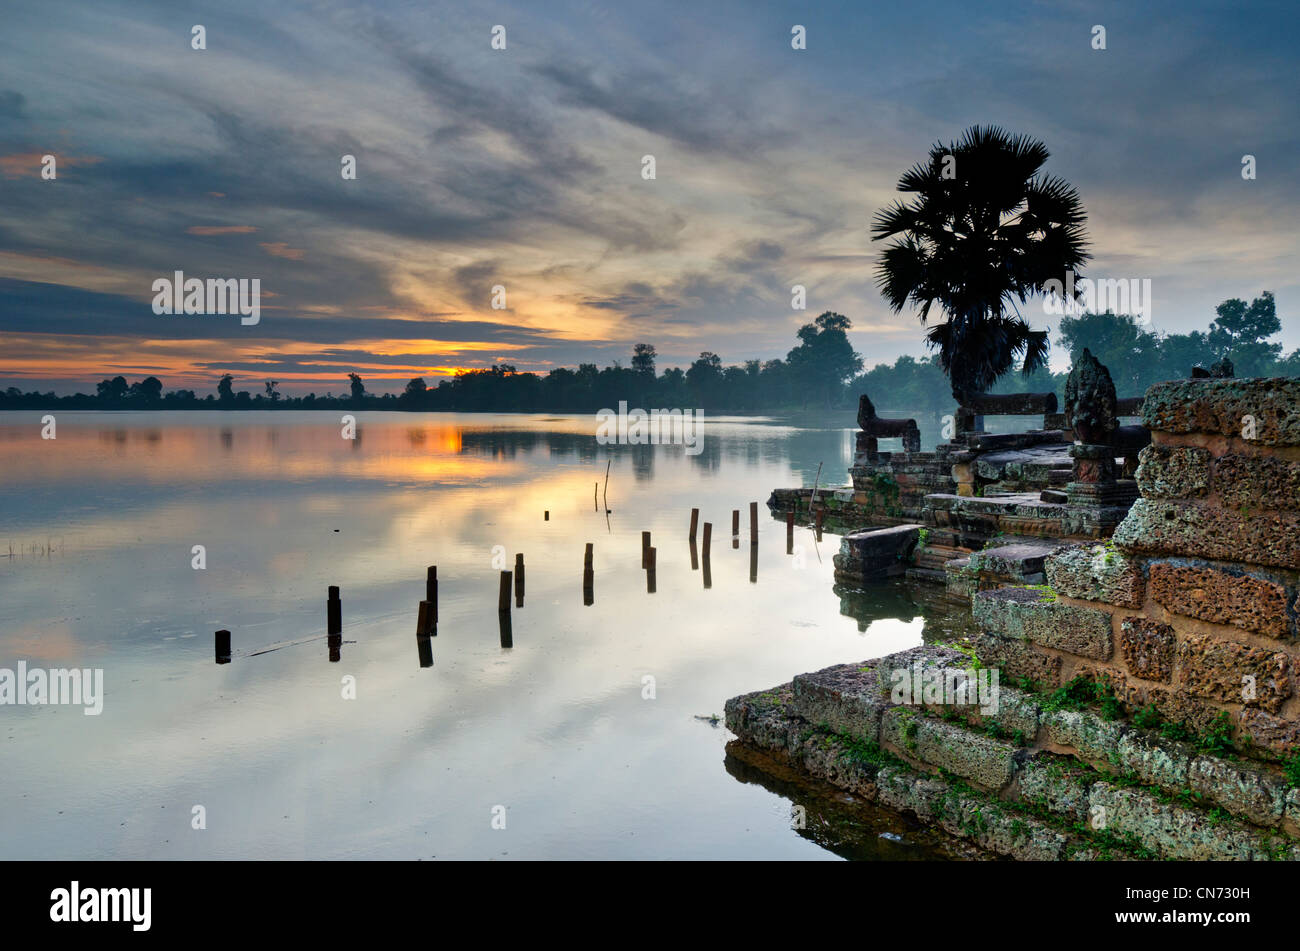 Sunrise from Srah Srang Temple over Moat, Ankor Wat, Cambodia - Stock Image